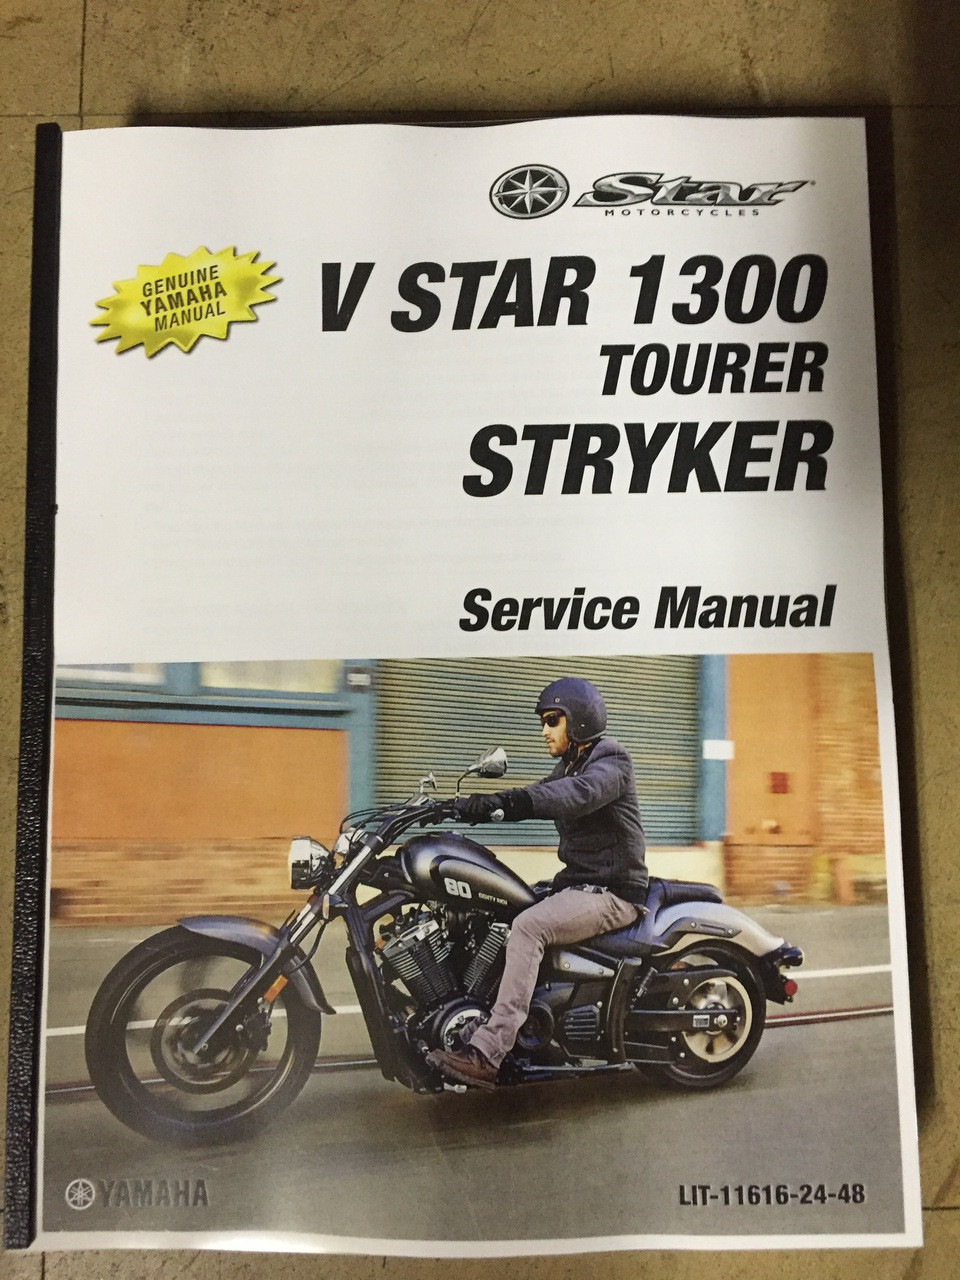 2011 2017 yamaha v star 1300 tourer stryker up to 2014 part rh service shop repair manual com 2013 yamaha stryker owners manual 2013 yamaha stryker owners manual